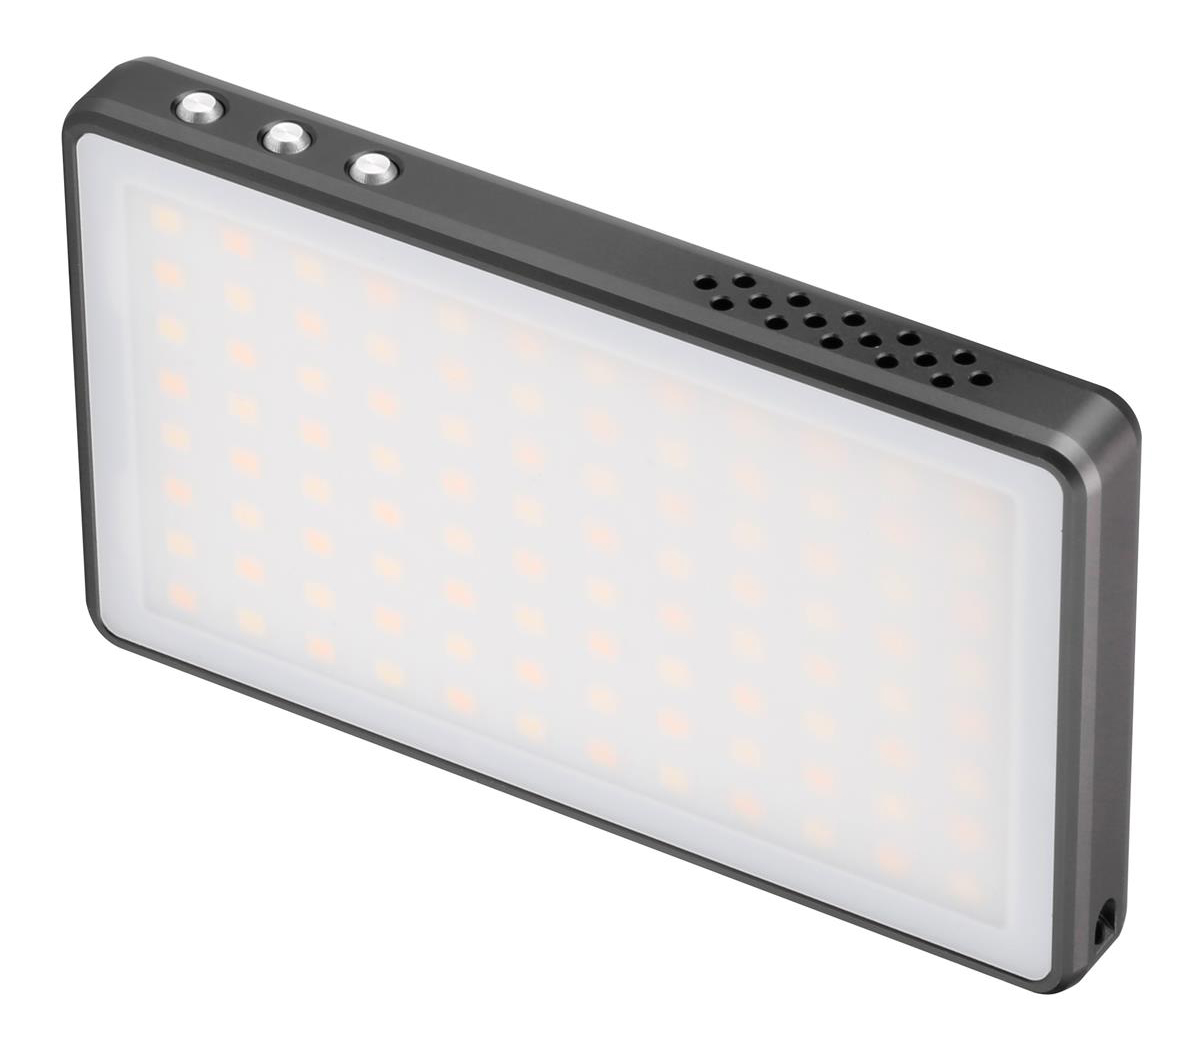 Leofoto FL-L120 LED-Panel für Foto und Video 109488